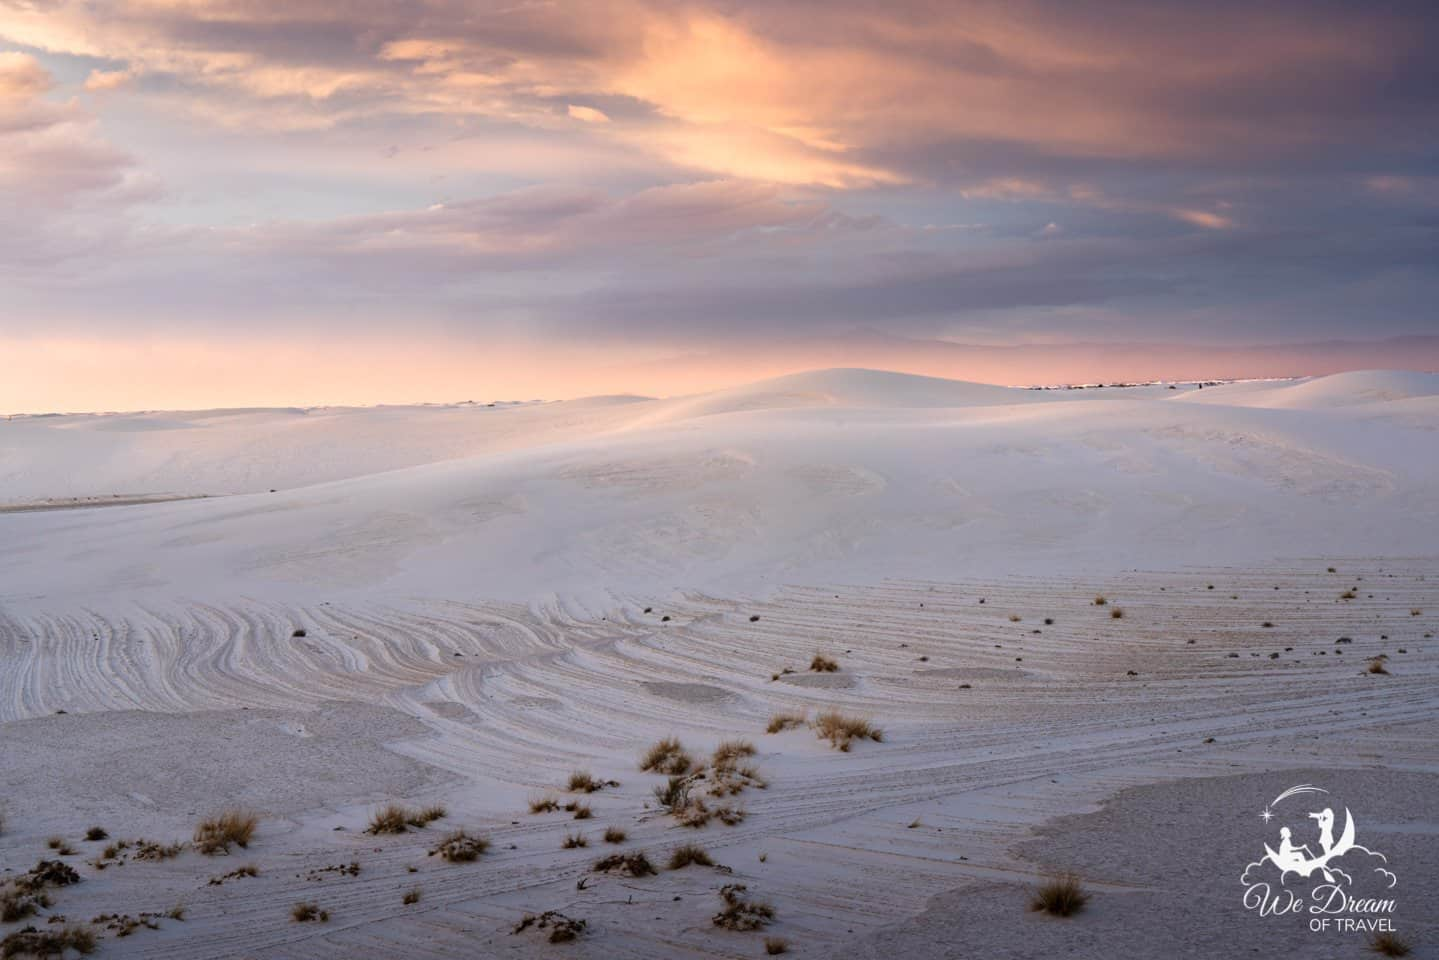 A simpler sunset photo from White Sands capturing the soft light and warm tones.